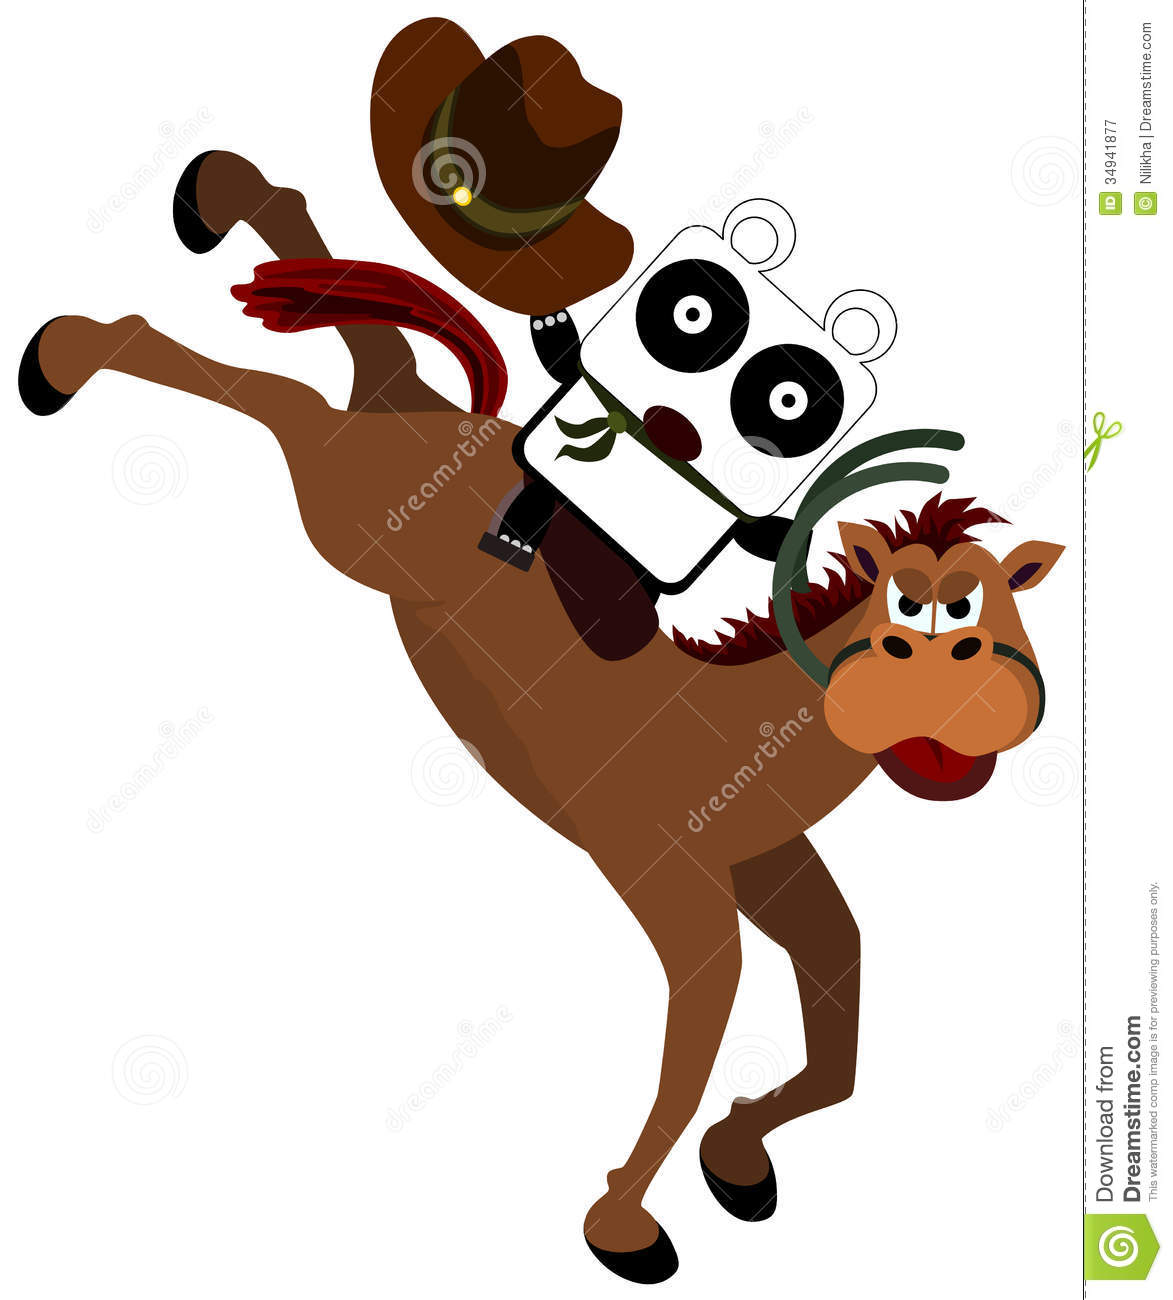 clipart panda cowboy - photo #3